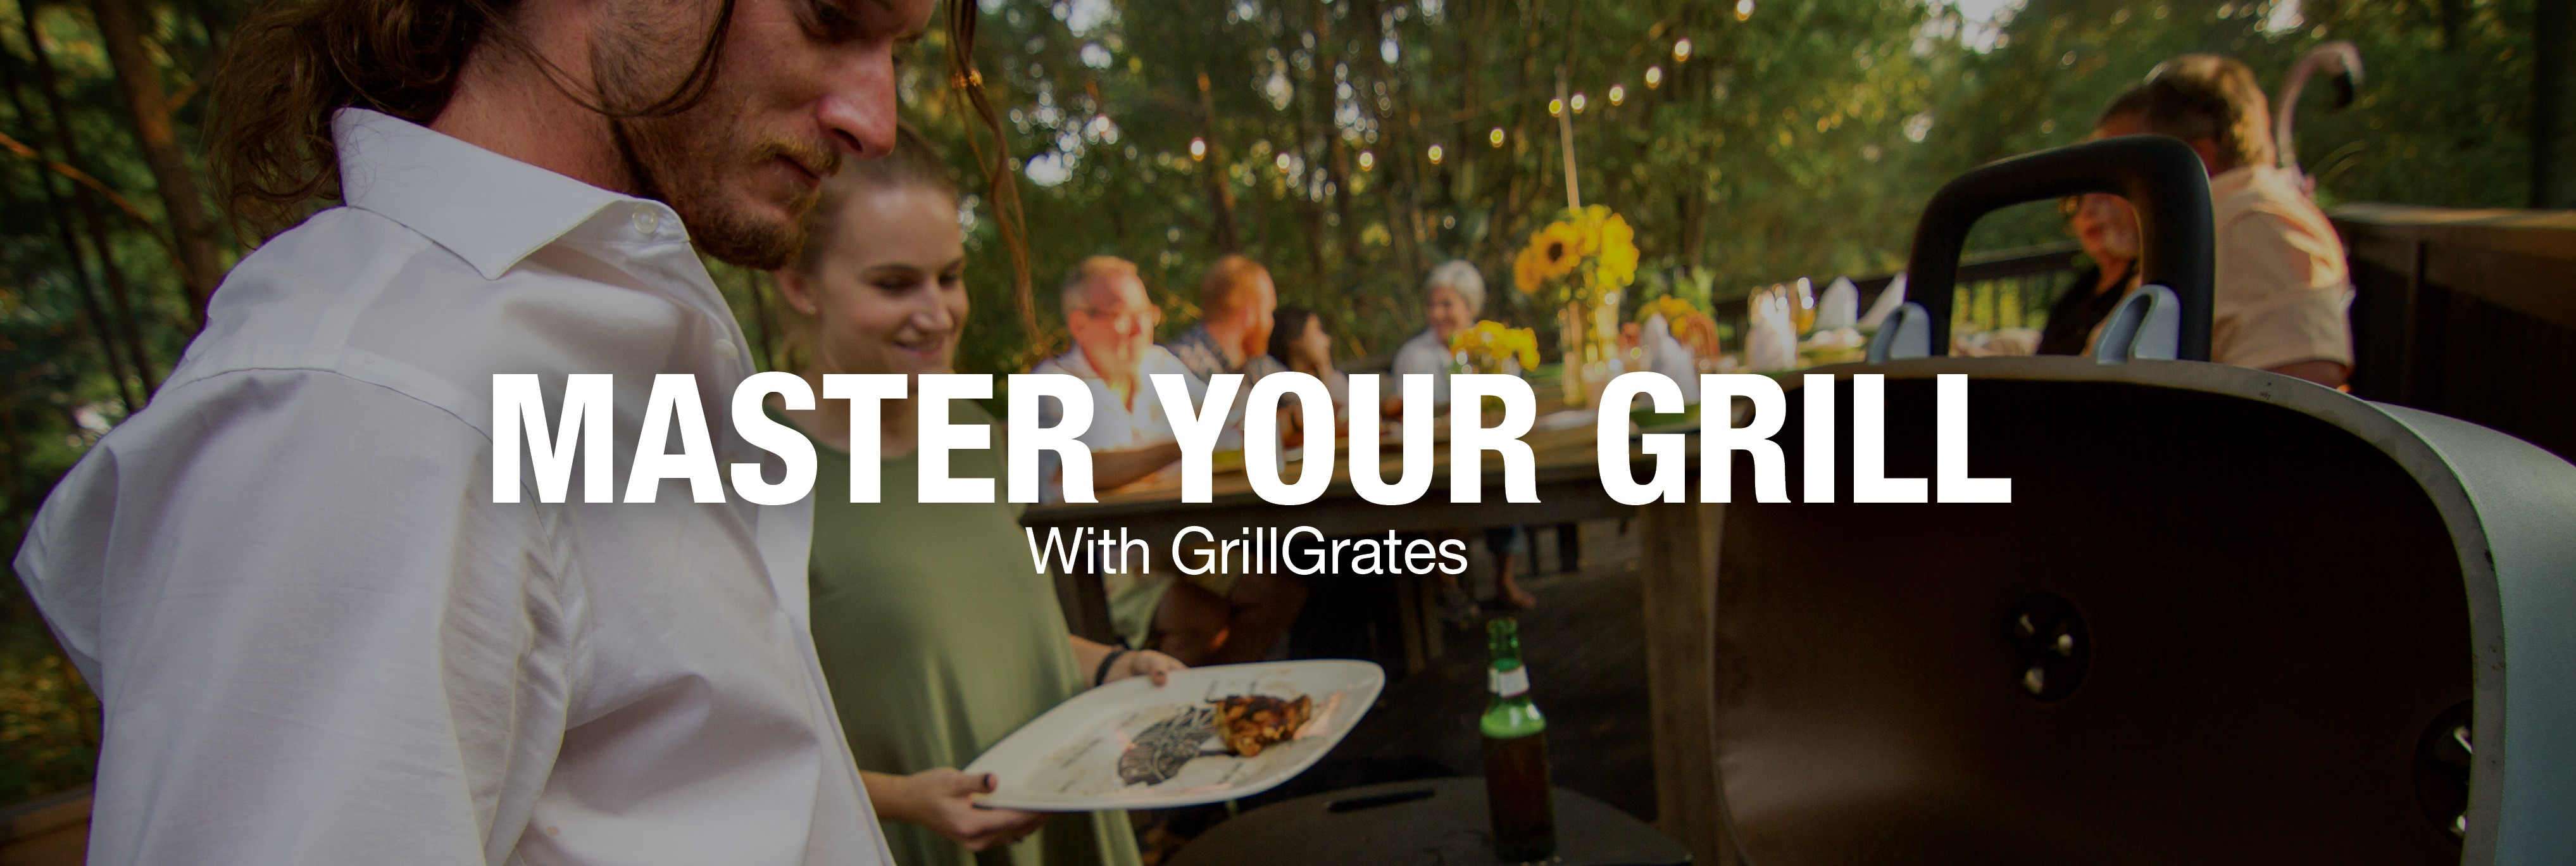 master_your_grill